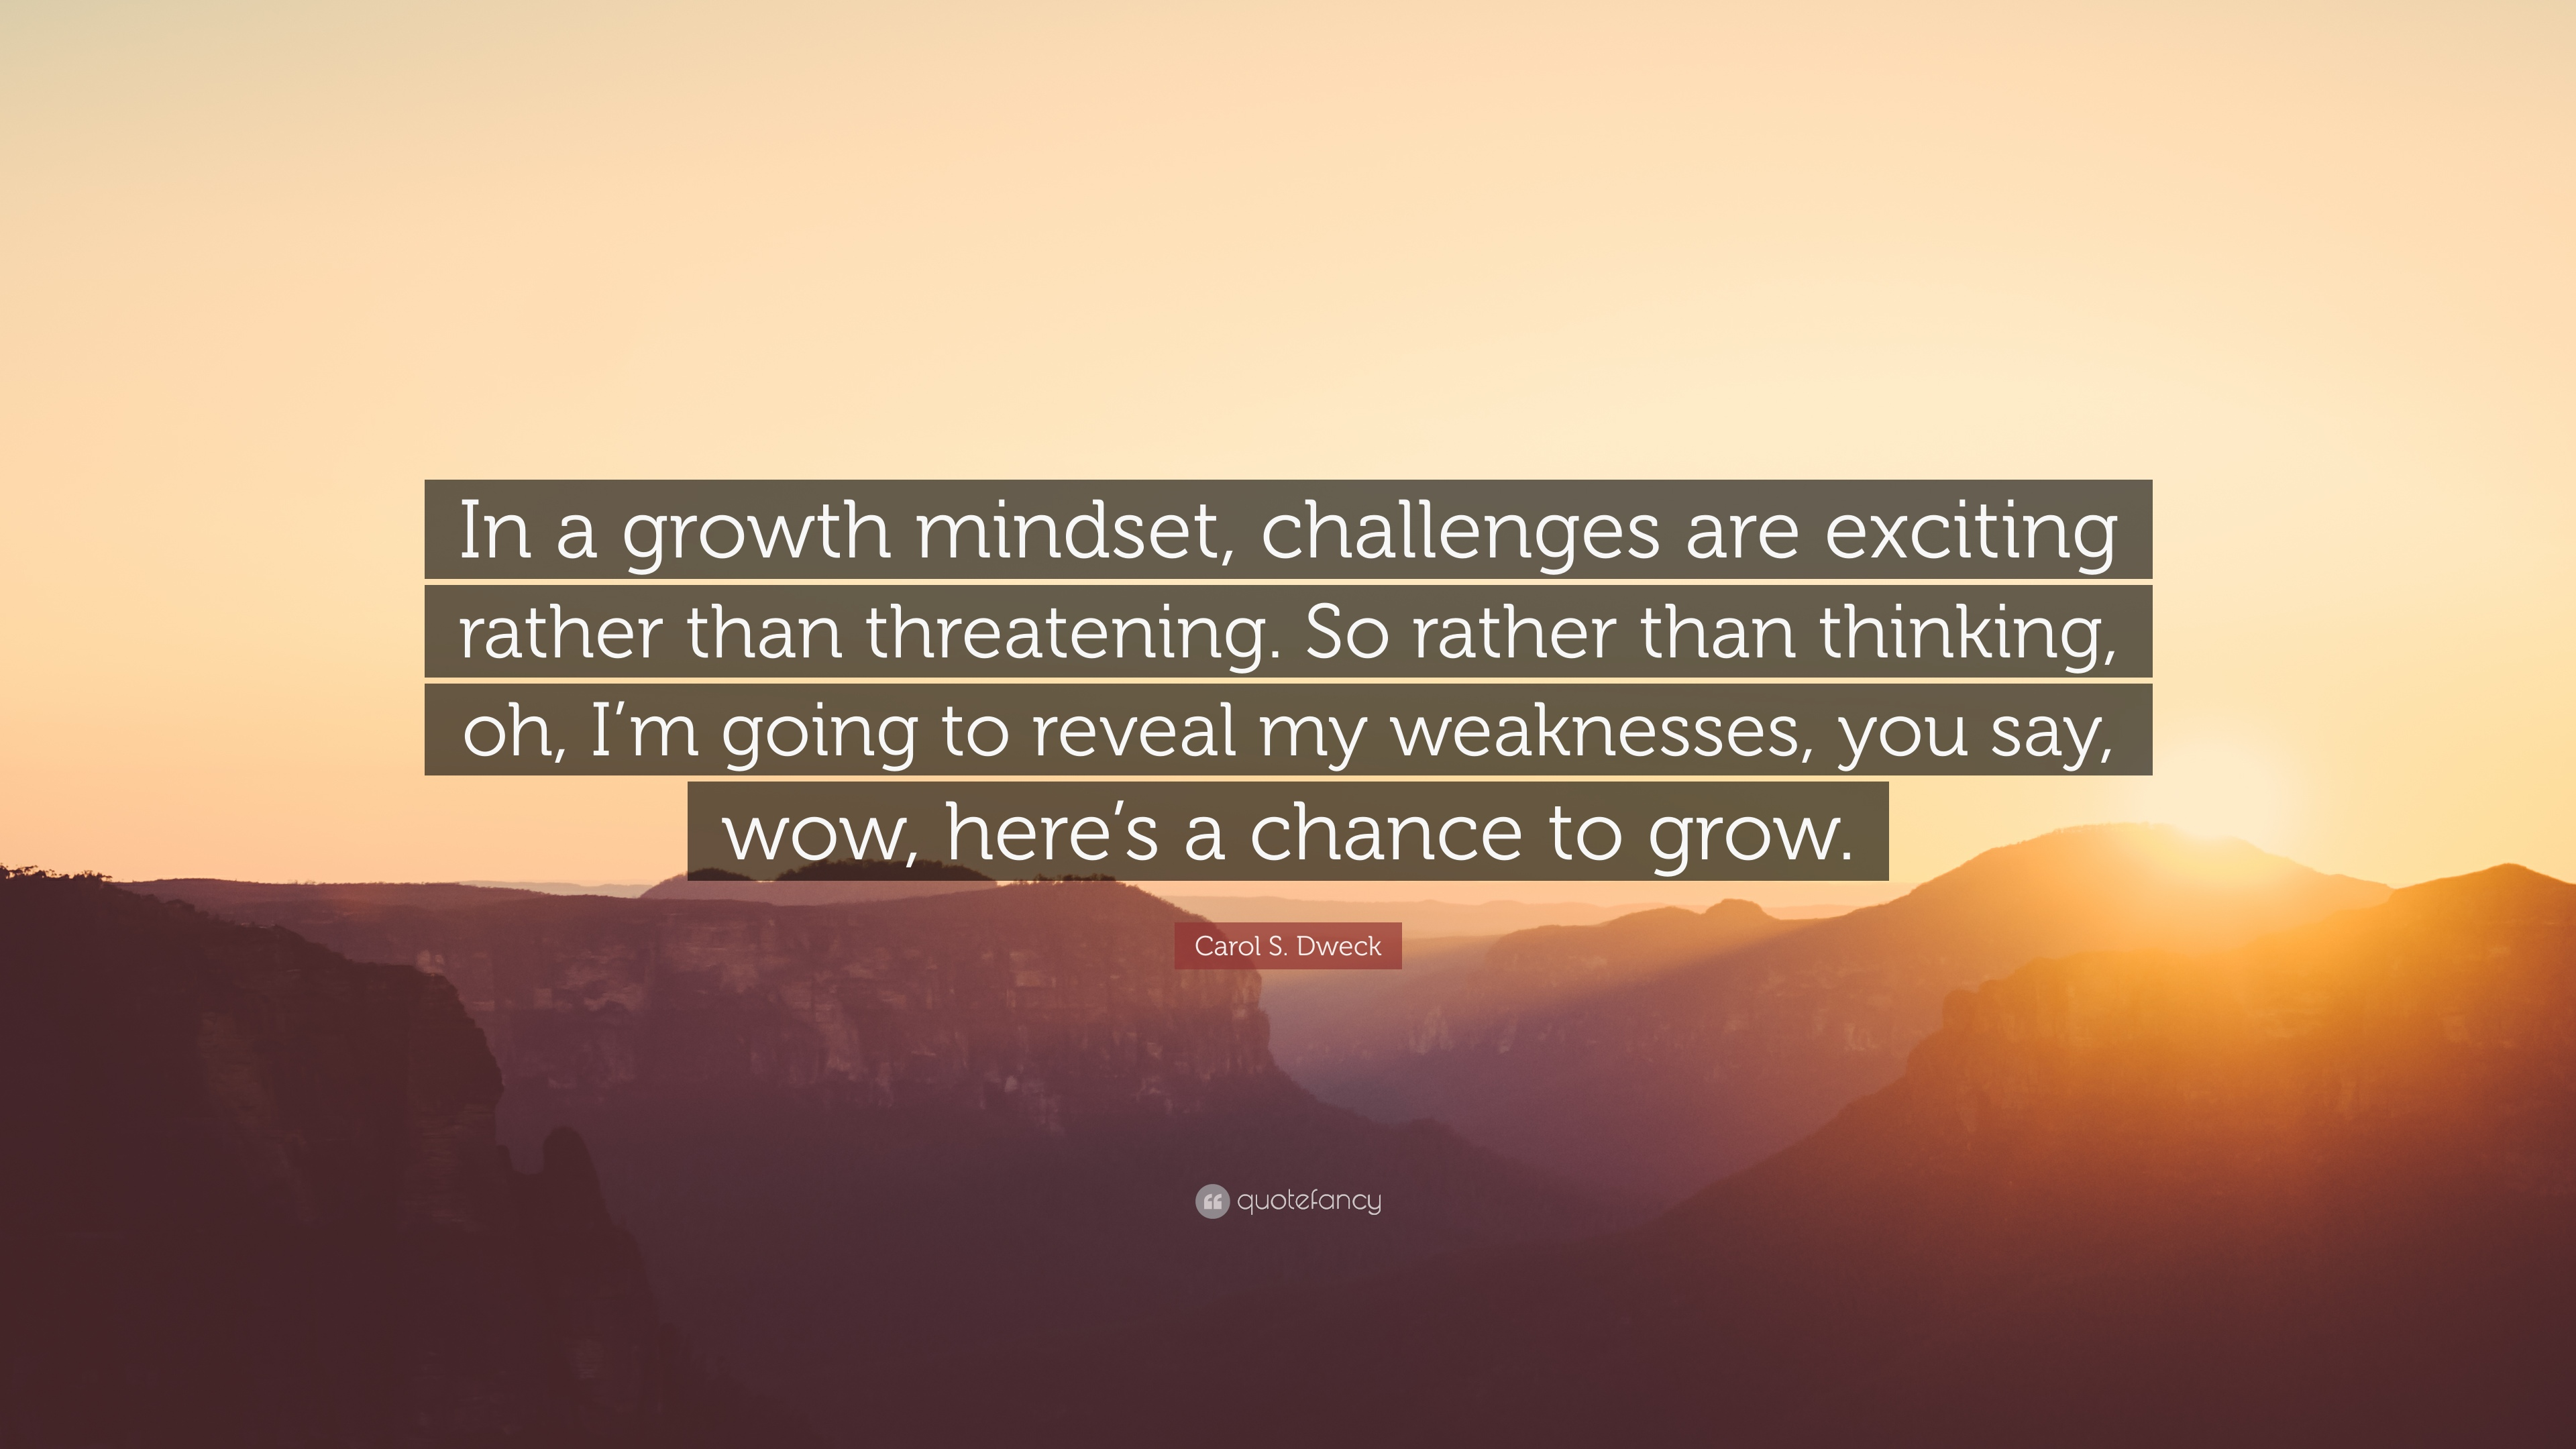 Growth Mindset Quotes | Carol S Dweck Quote In A Growth Mindset Challenges Are Exciting